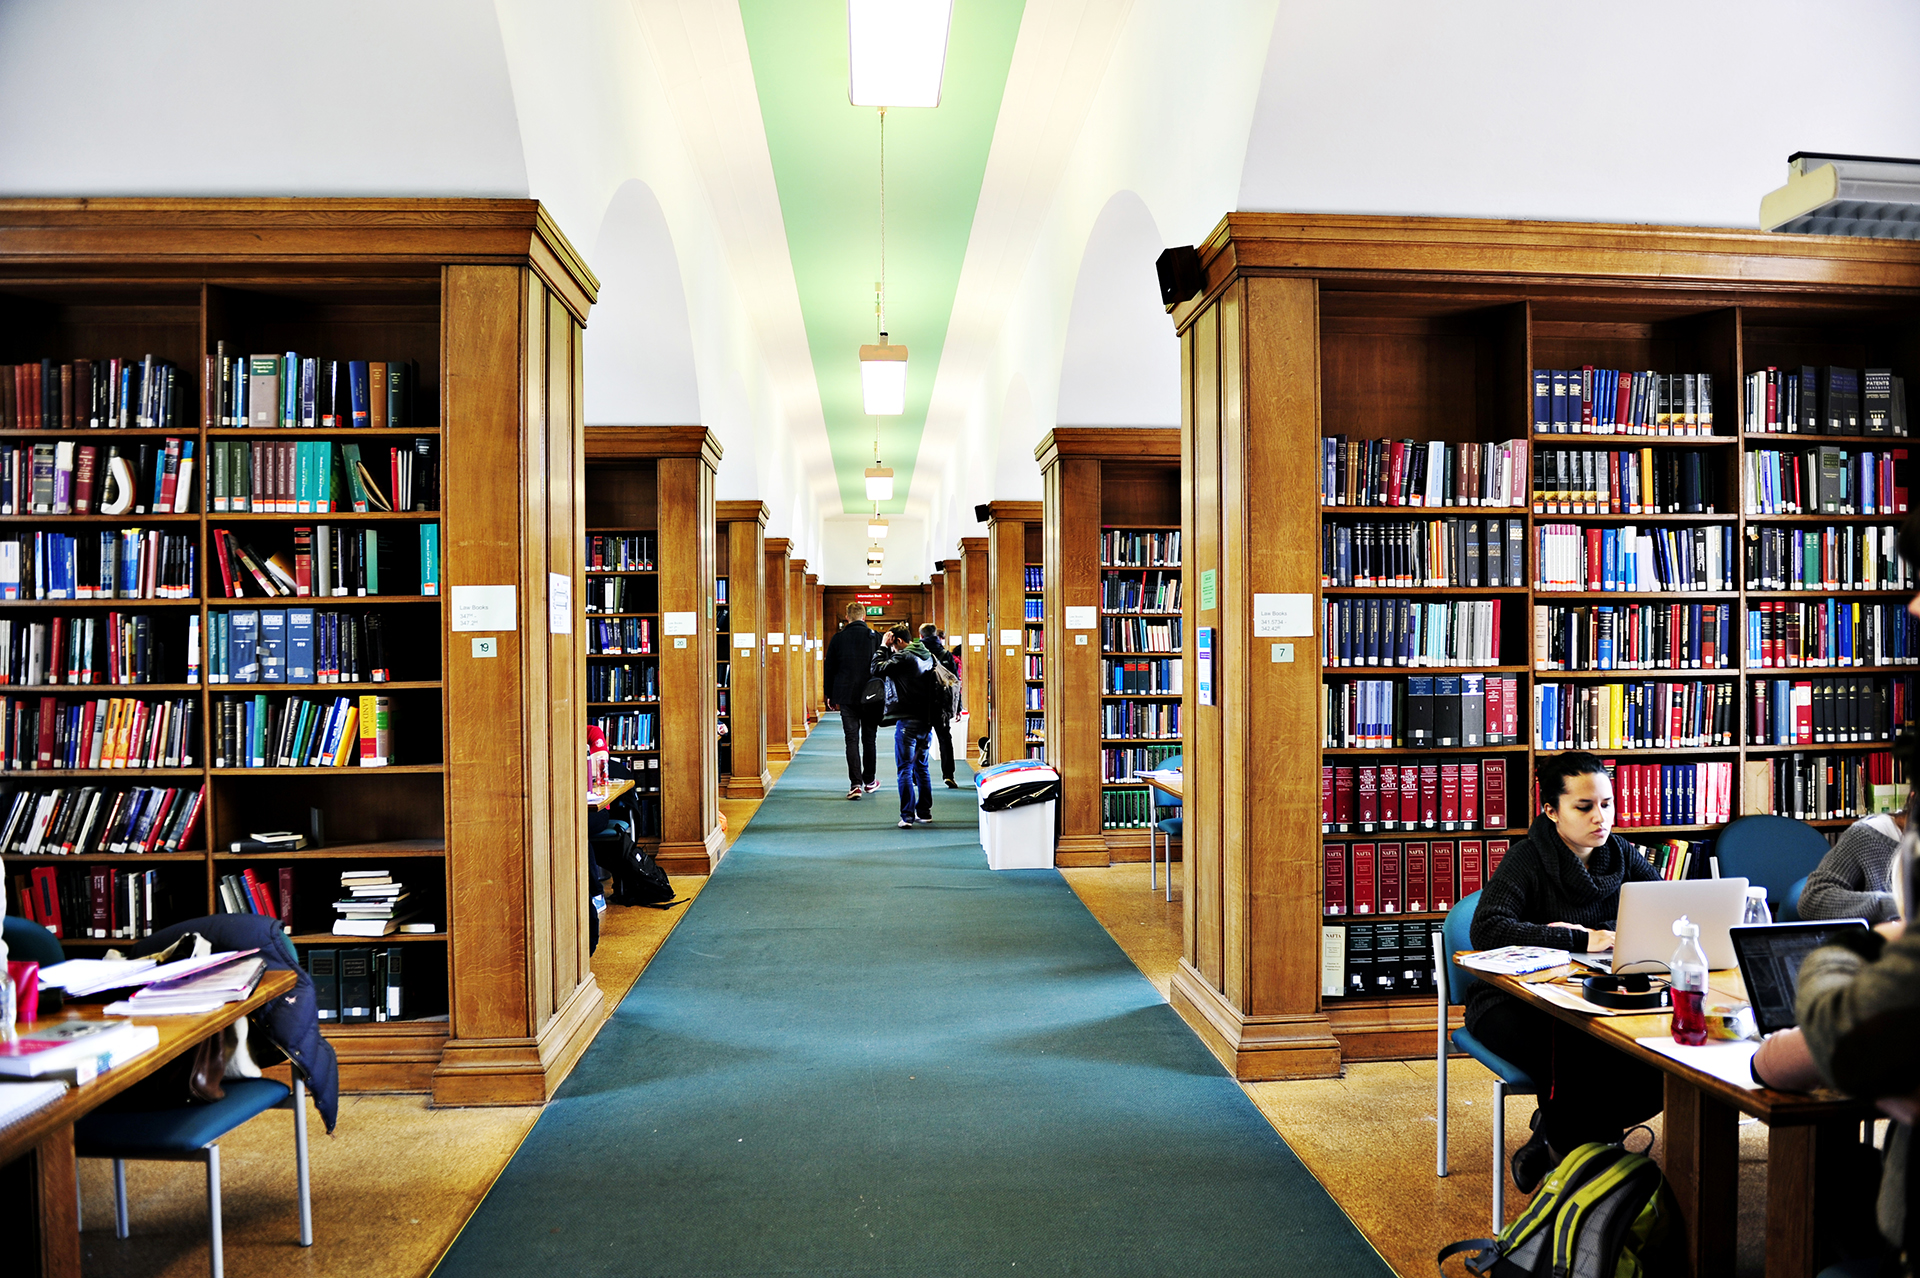 The John Rylands library at The University of Manchester